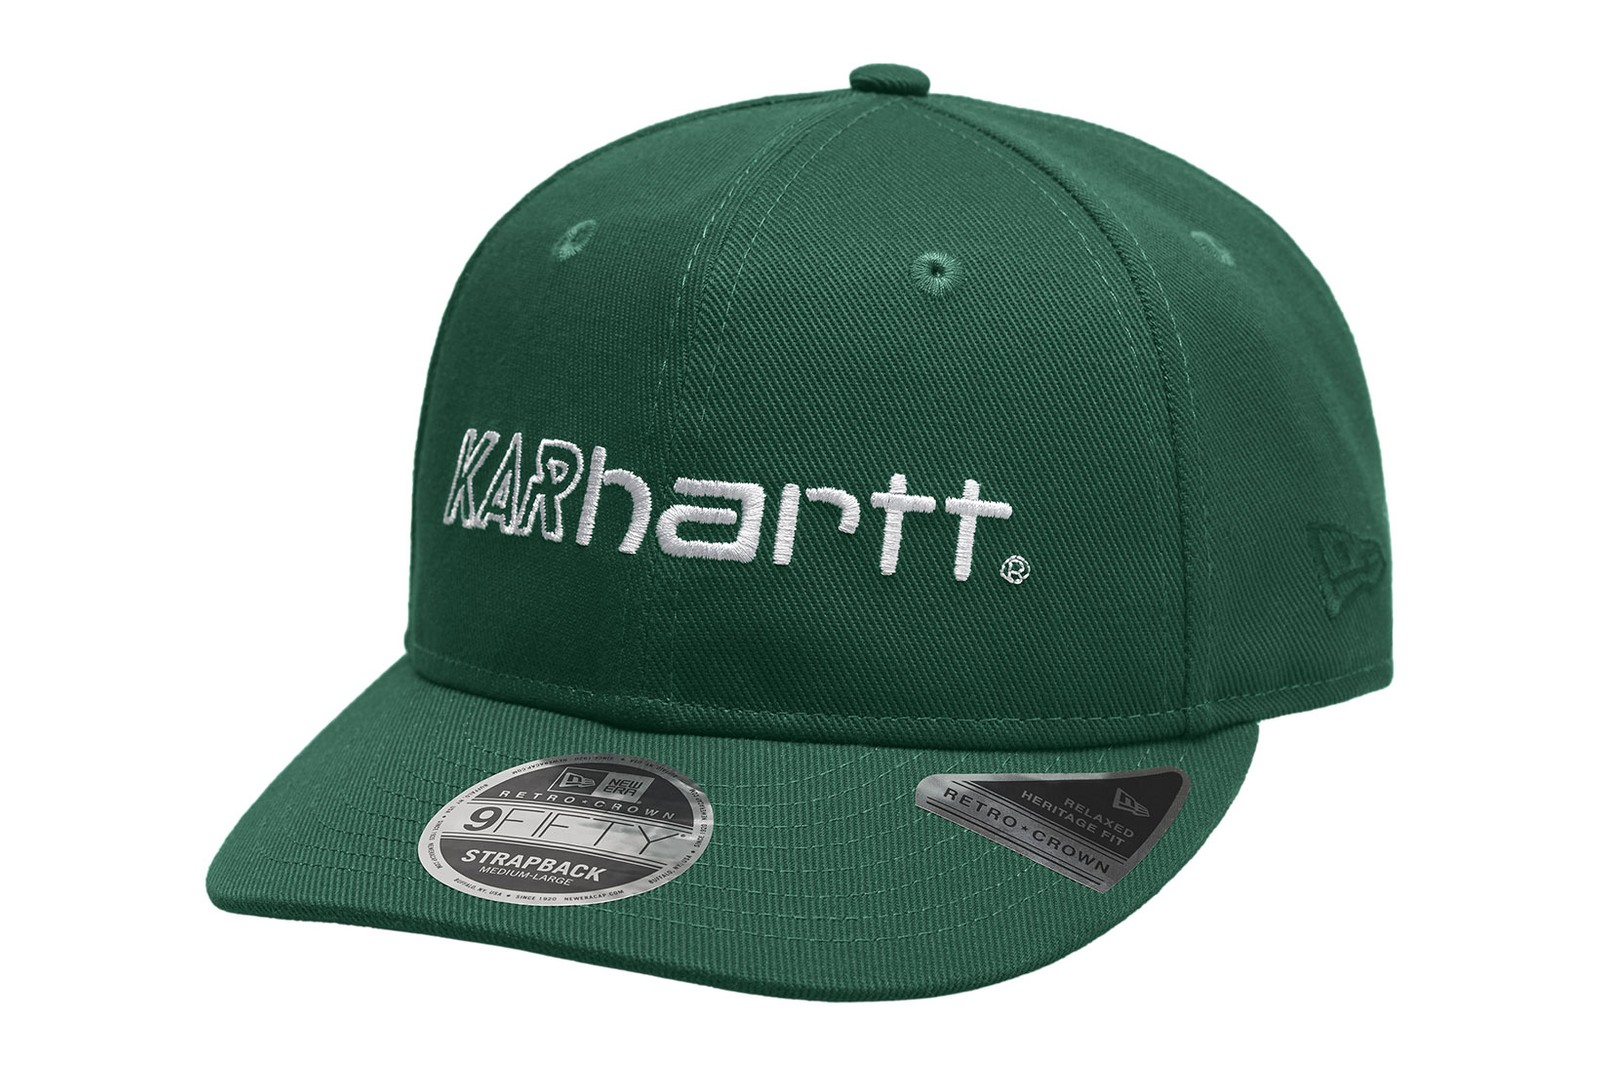 carhartt wip lart de lautomobile karhartt cars automotive collaboration caps jackets nalgene water bottle release where to buy